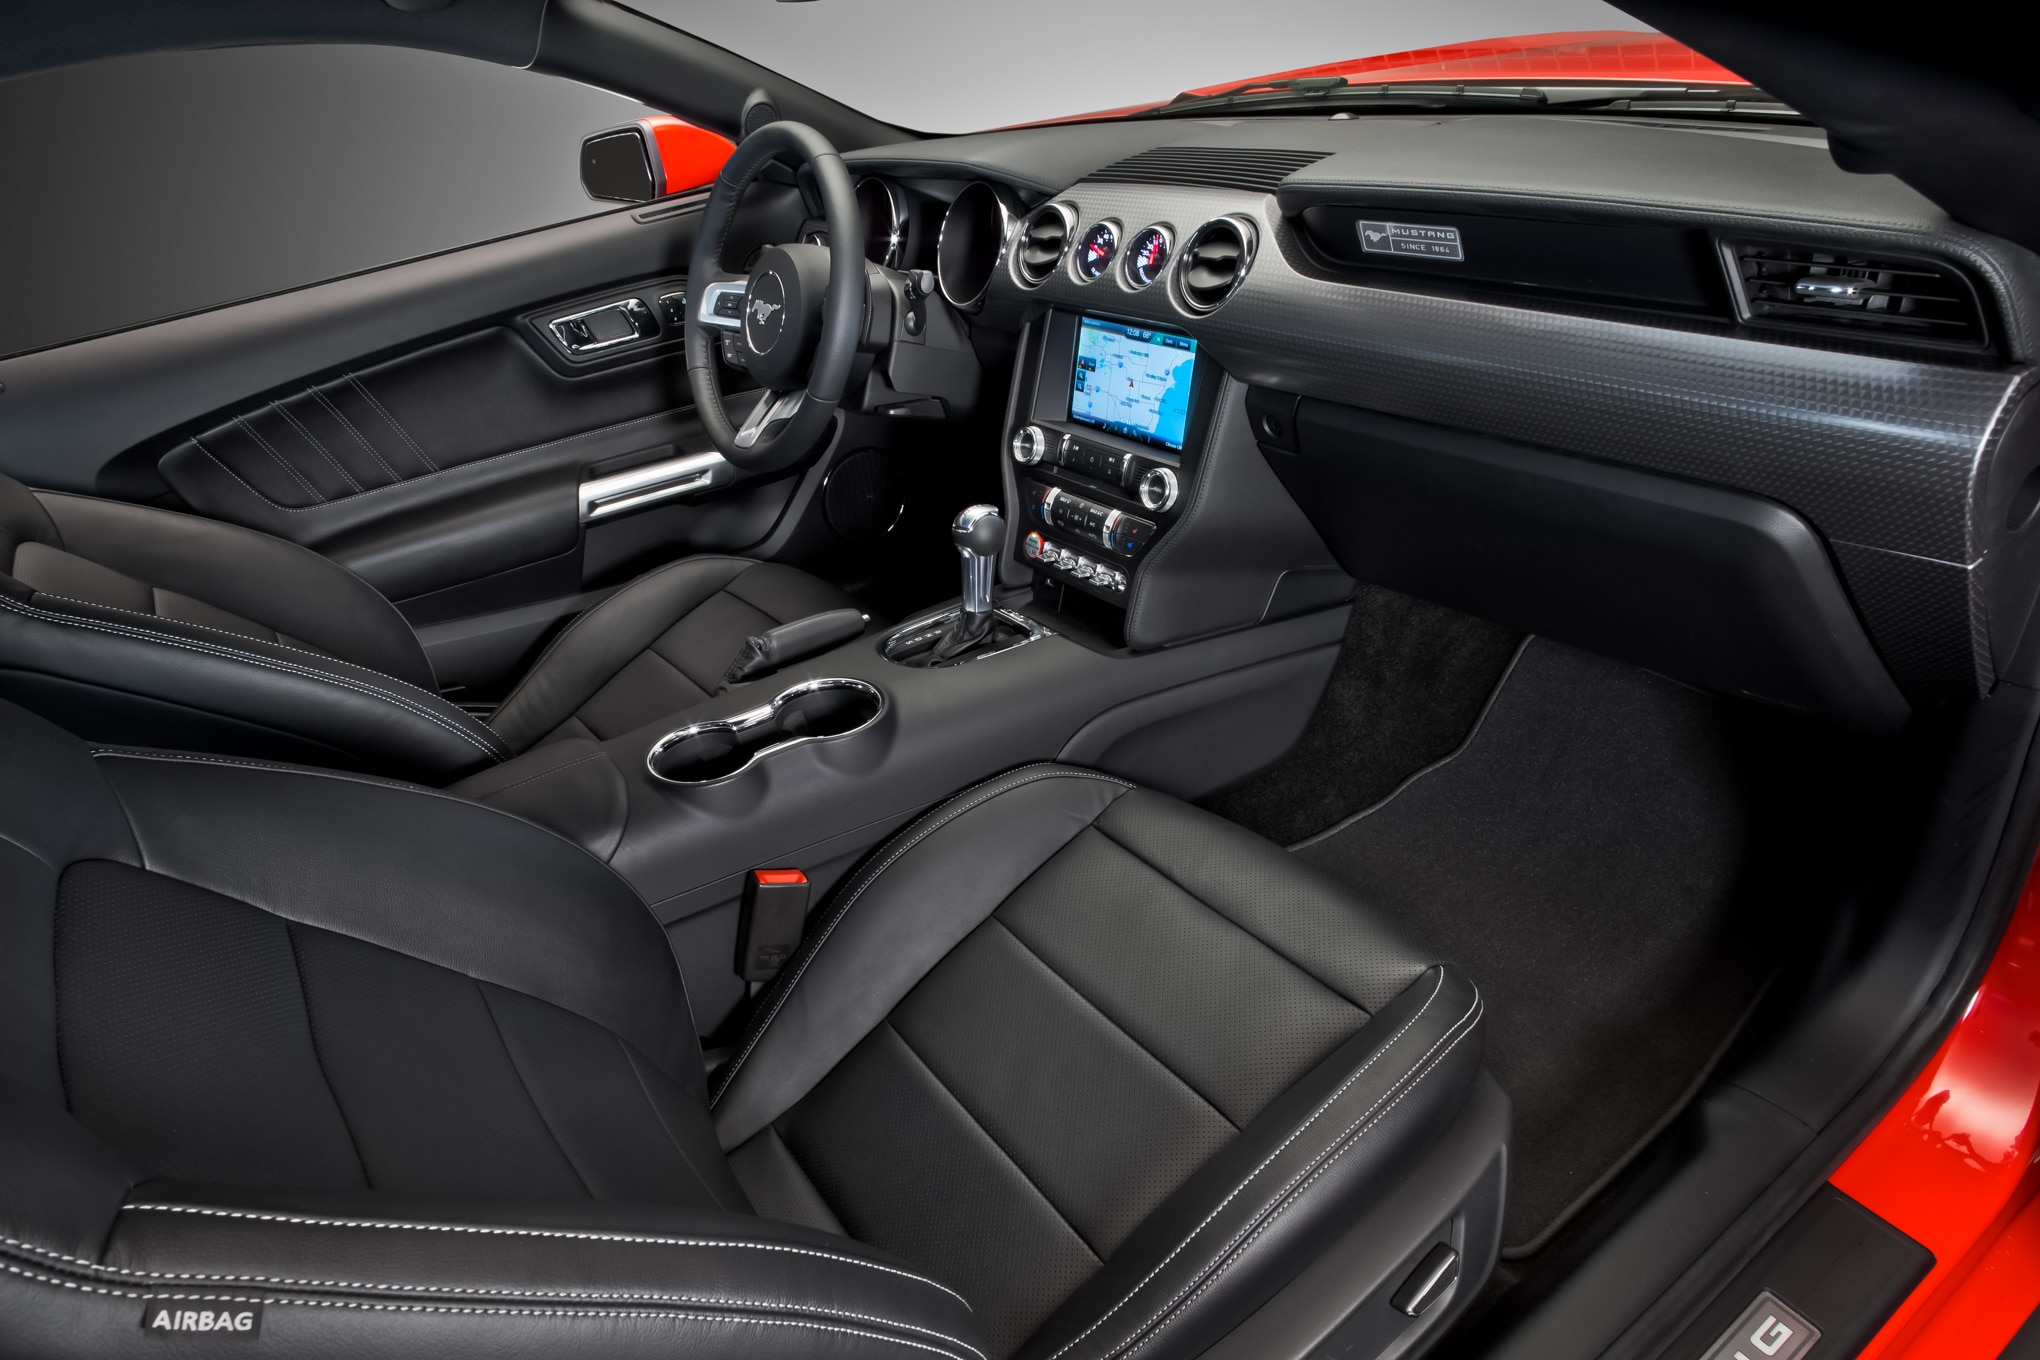 Interior Mustang 2015 Mustang Saleen 2015 Ford Mustang Gt Fastback 50 Year Limited Edition